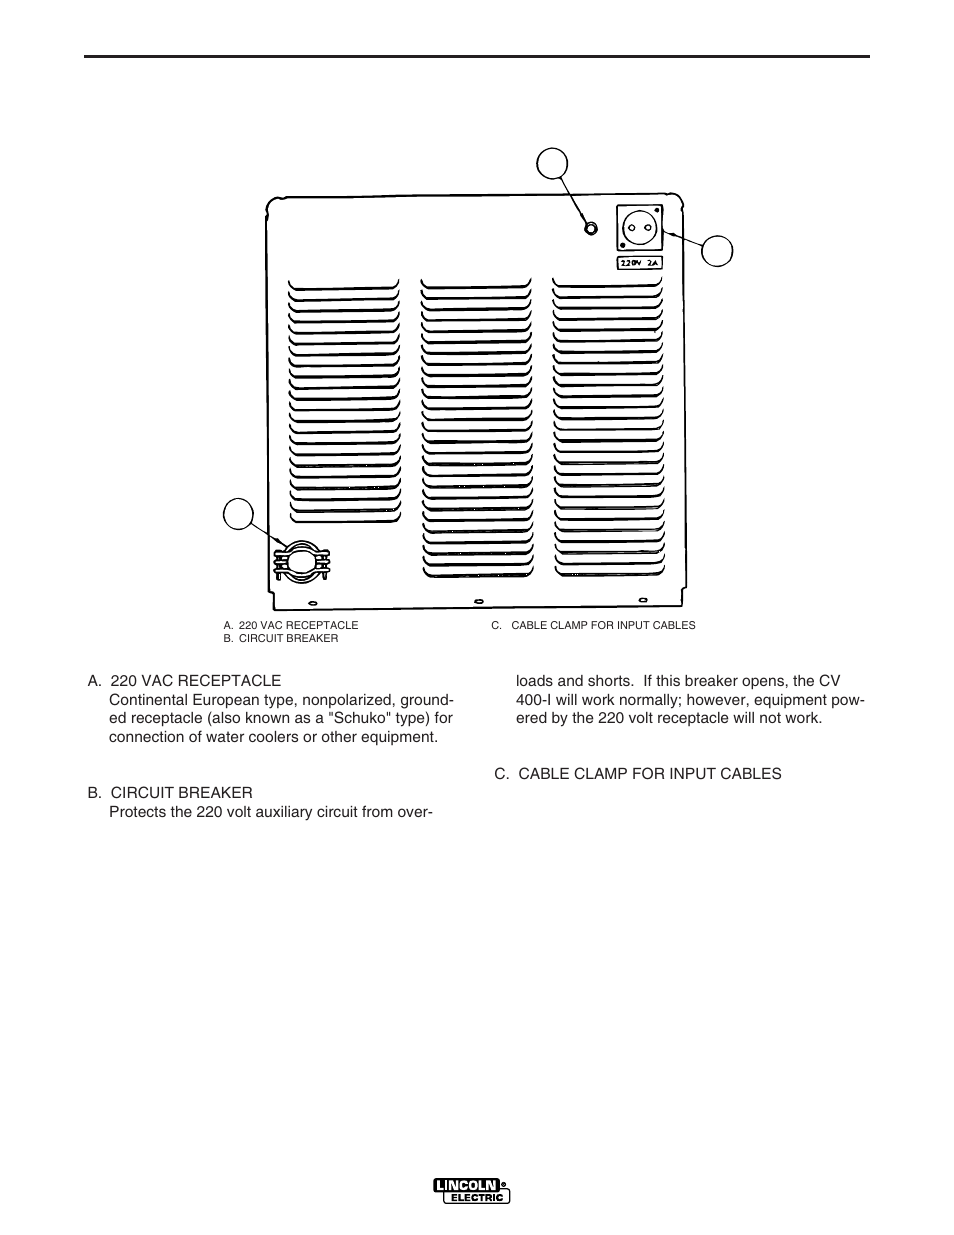 Operation, Ab c, Case back connections | Lincoln Electric IM501 IDEALARC  CV400-I User Manual | Page 17 / 44